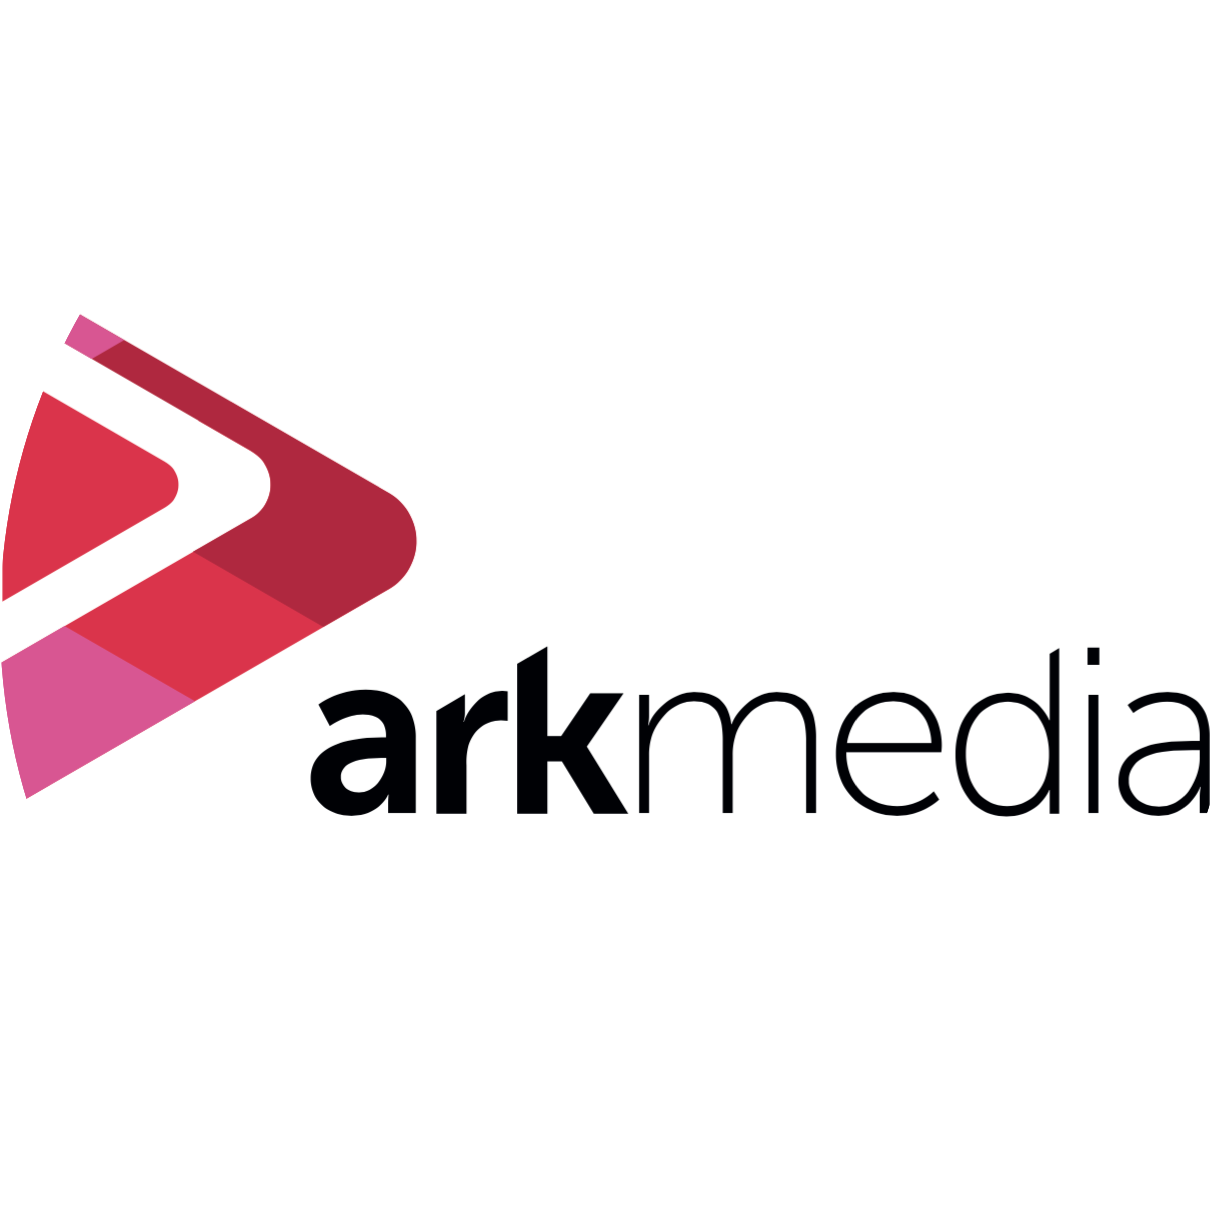 Ark Media logo, featuring two red and pink triangles